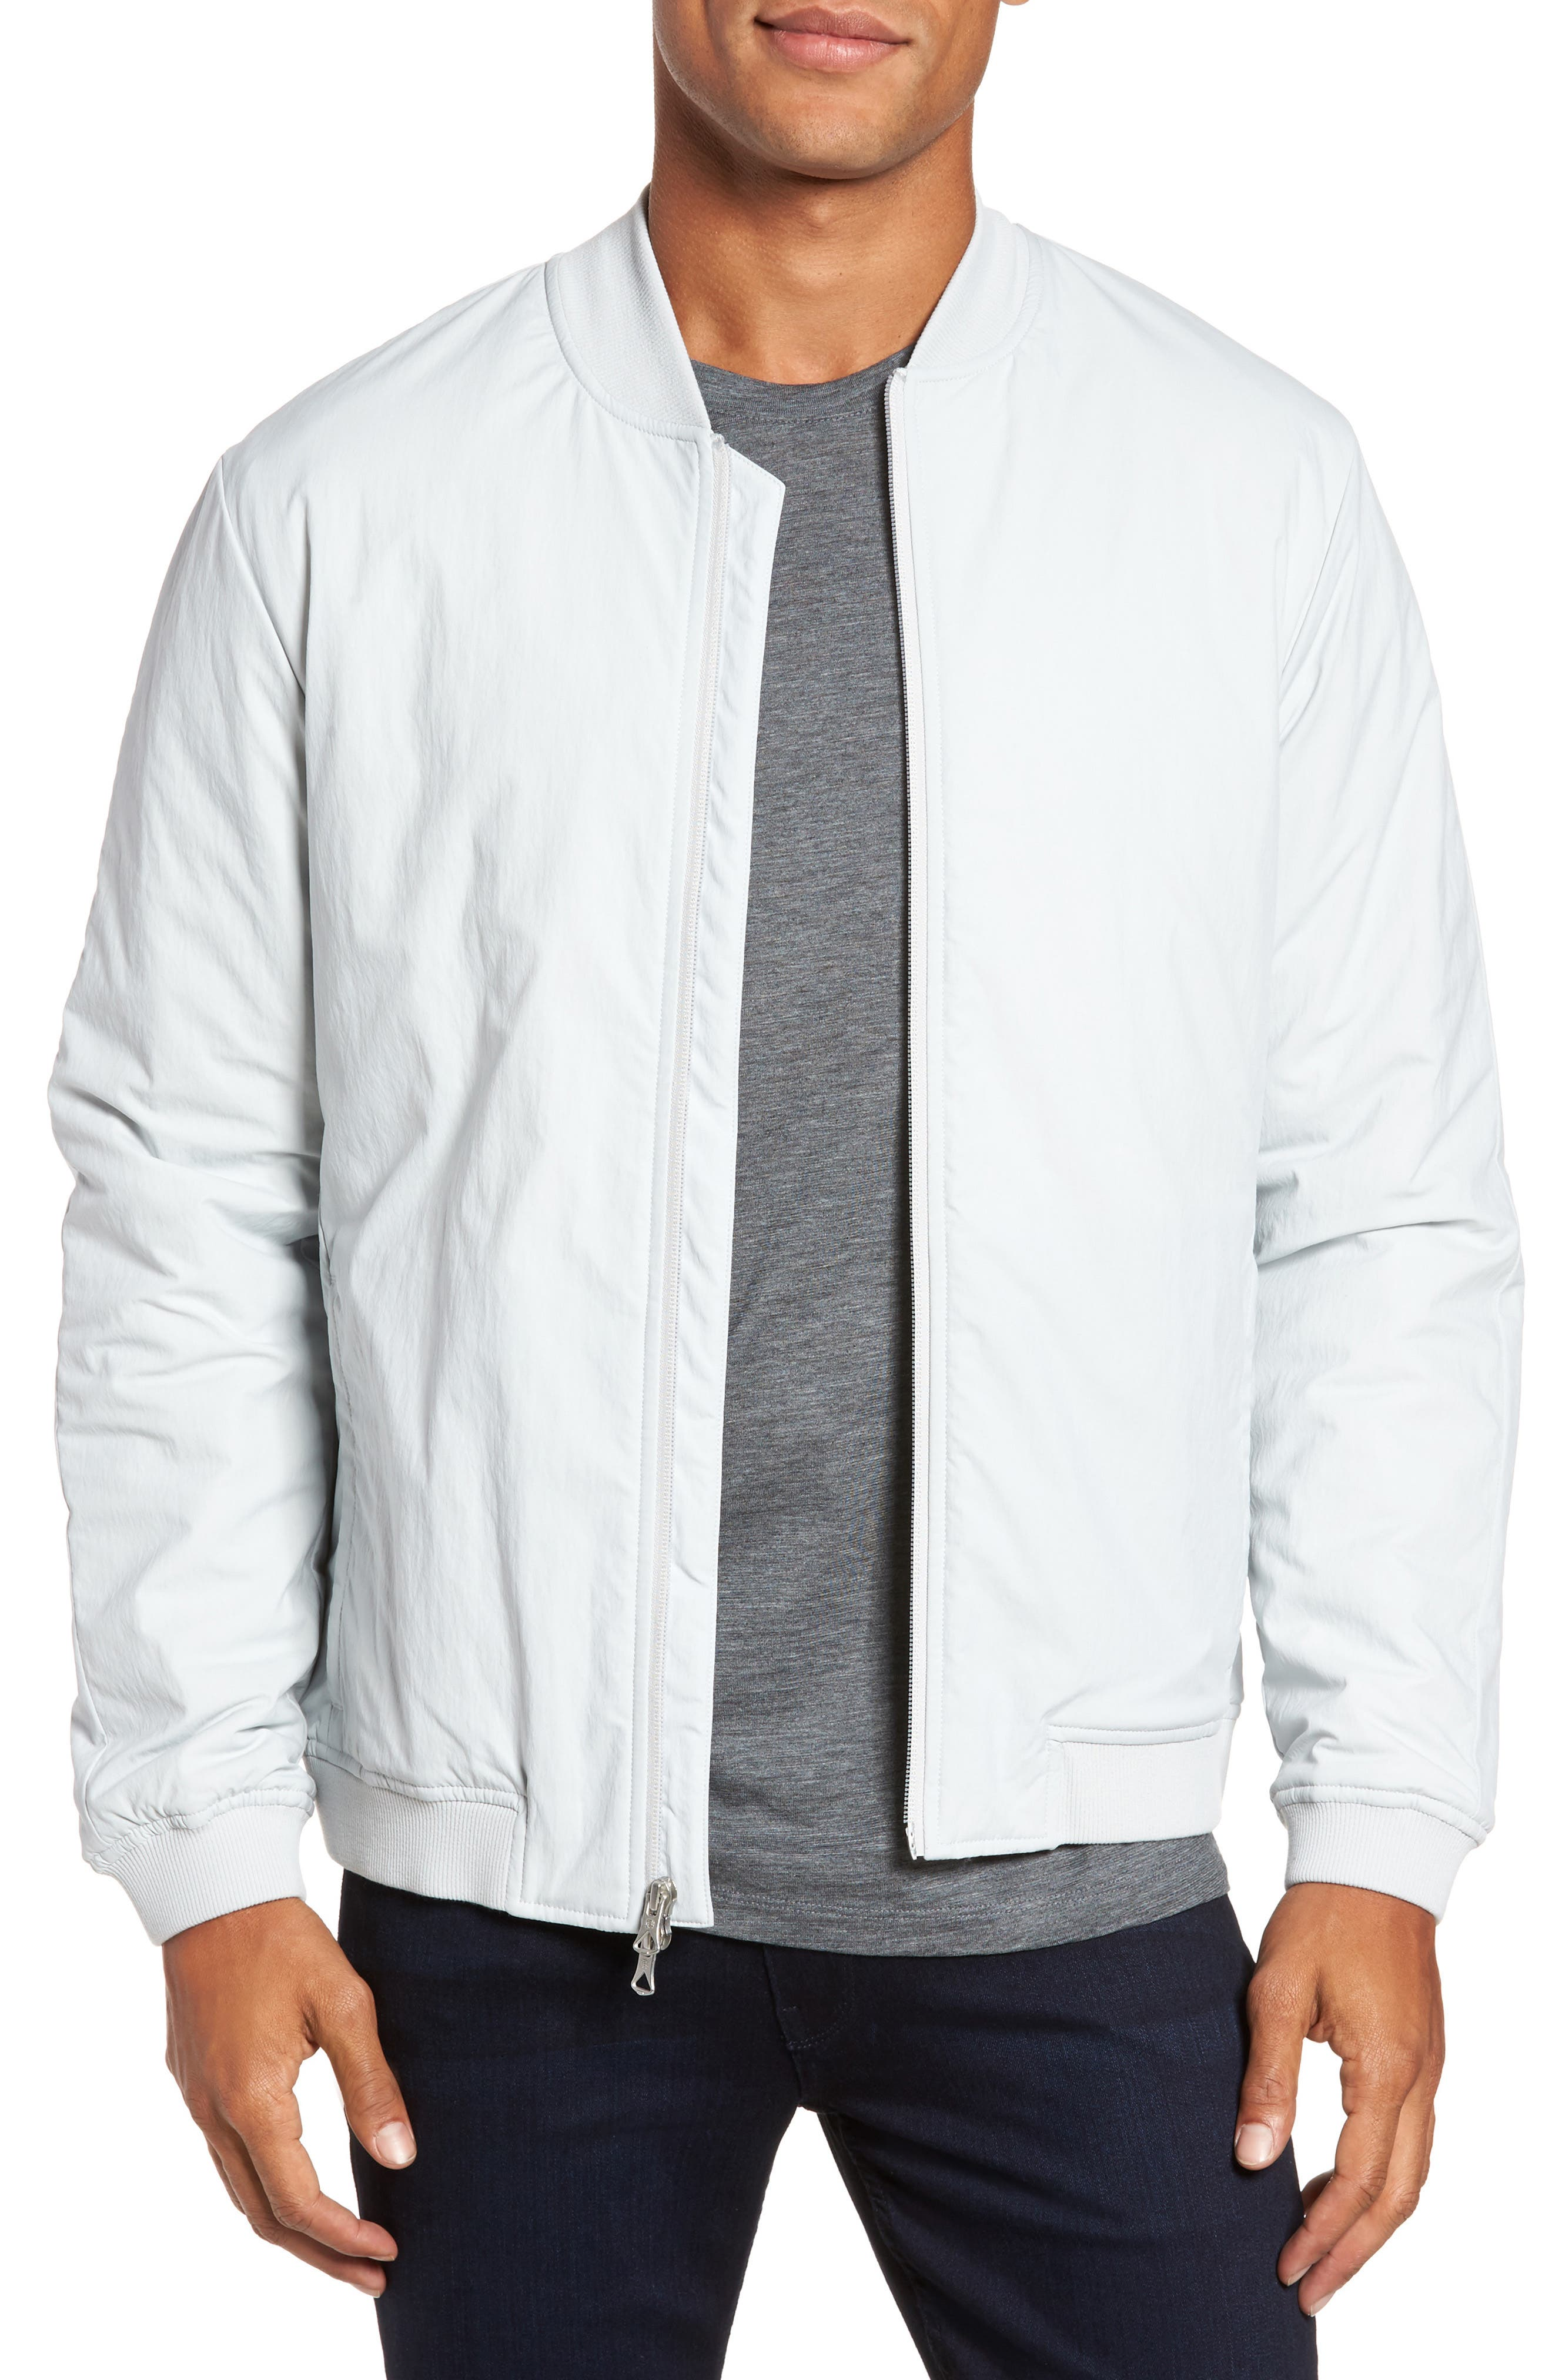 Insulated Bomber Jacket,                         Main,                         color, Sky Grey